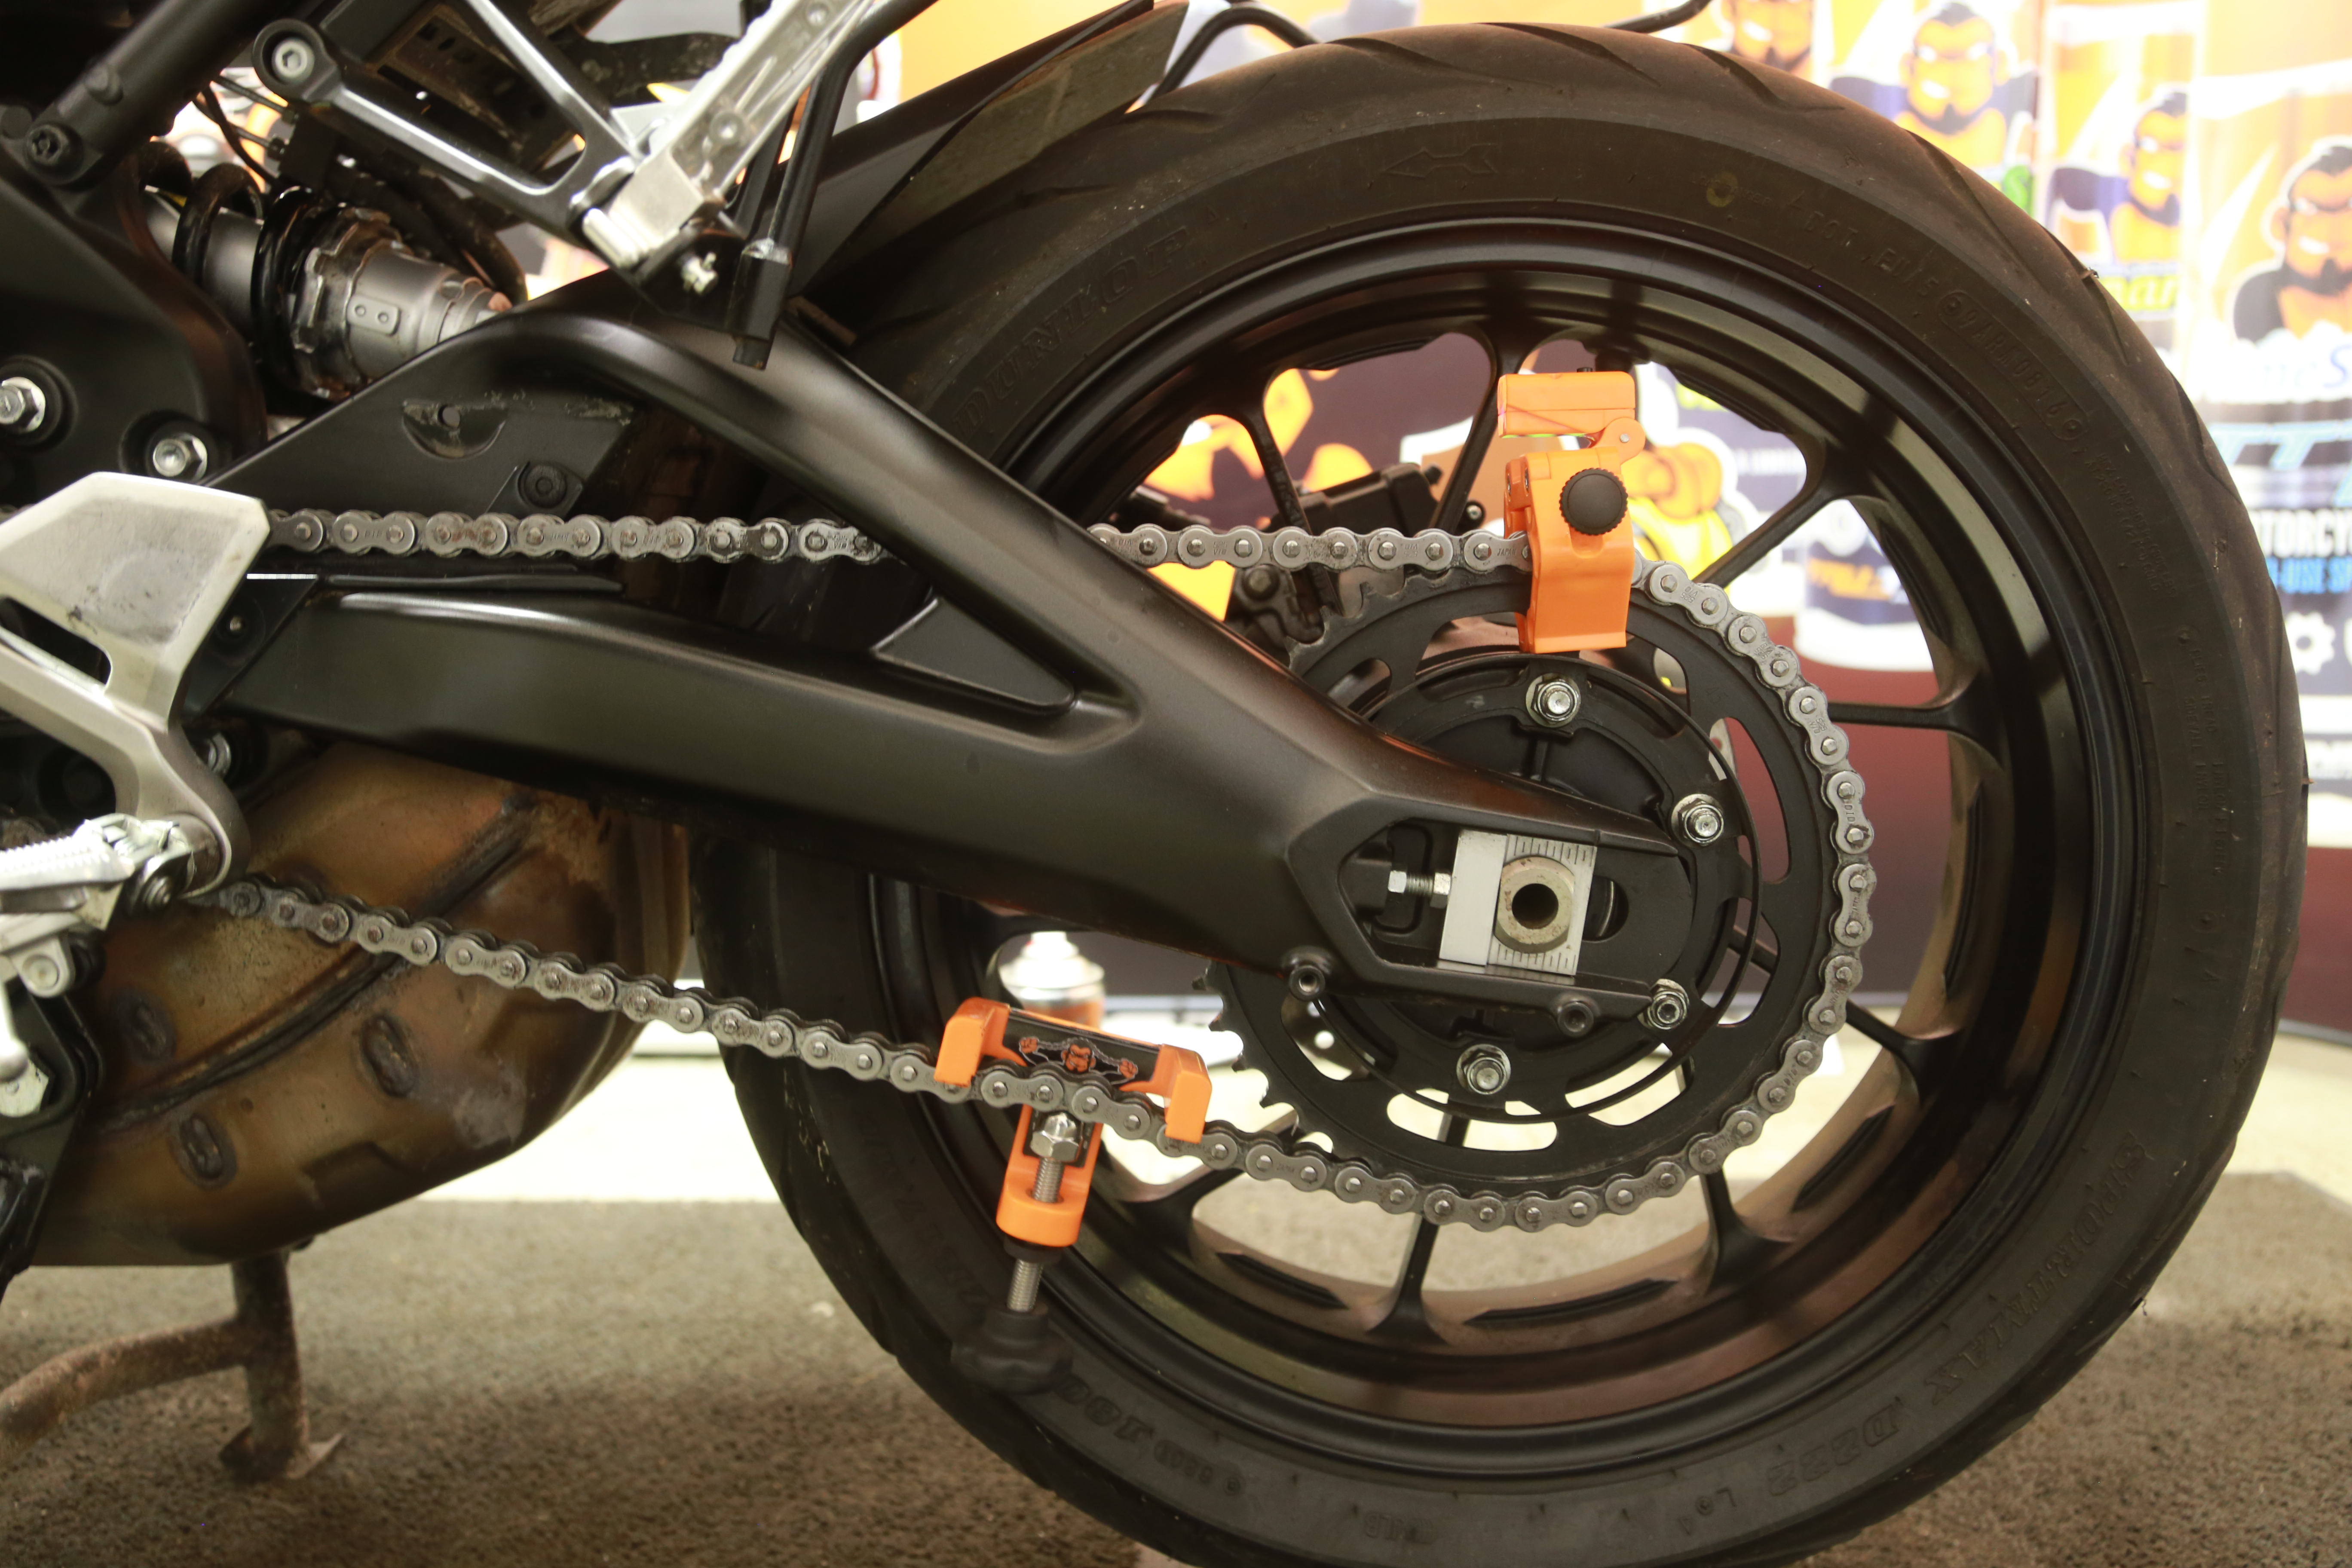 Laser Monkey - Motorcycle Laser Alignment Tool